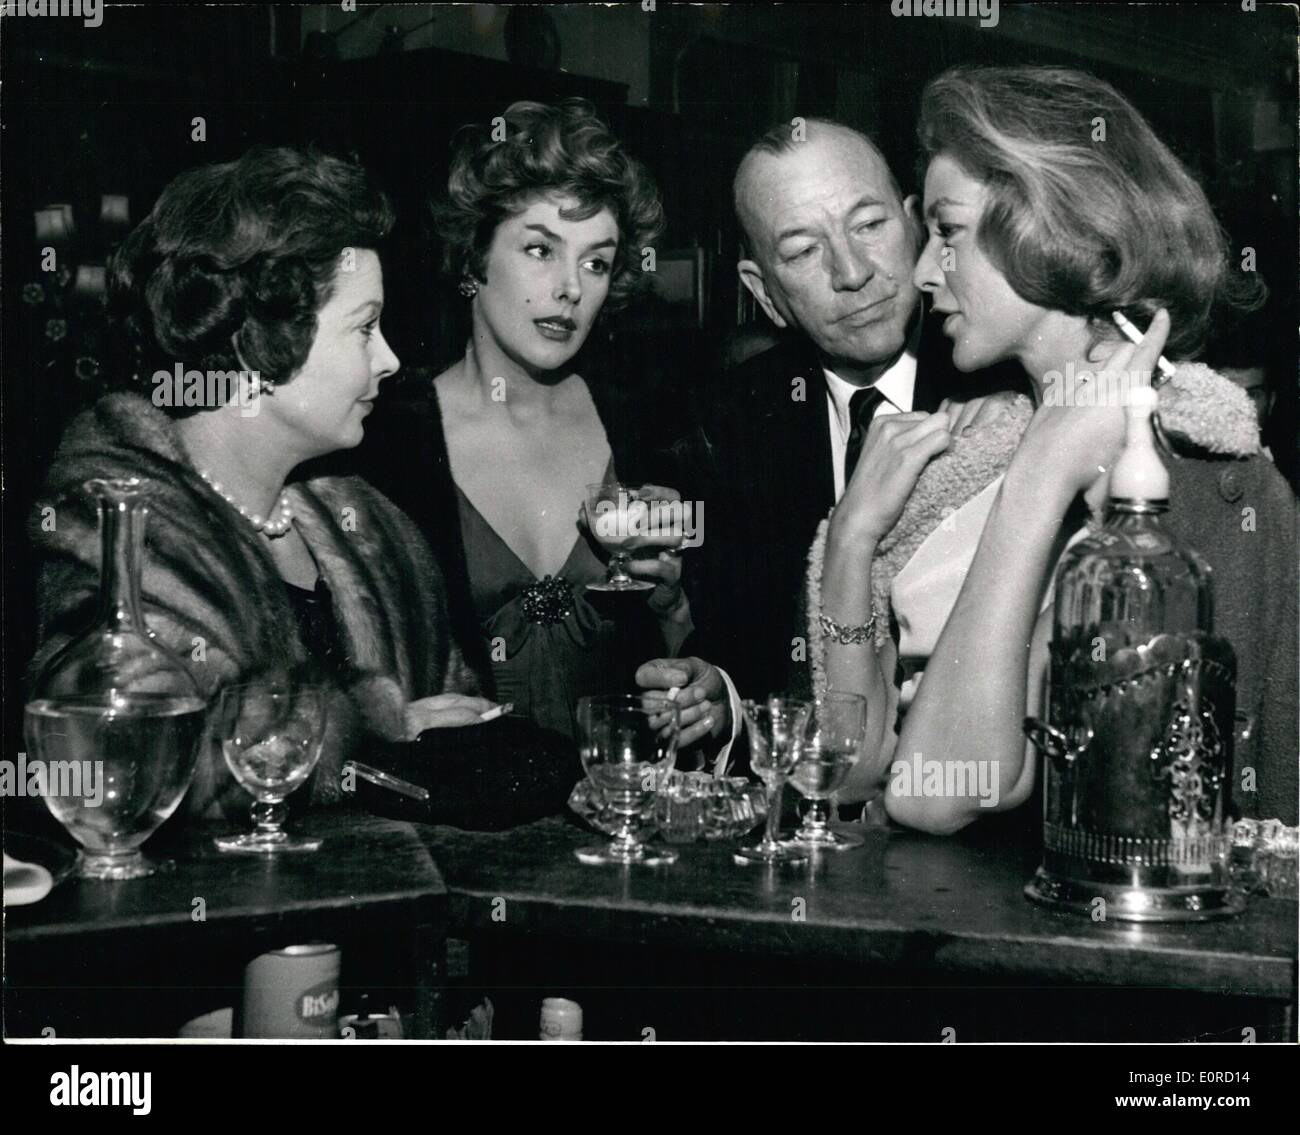 Jan. 29, 1959 - 29.1.59 The lucky squire of London town Noel Coward escorts three fascinating women. Mr. Noel Coward was surely the luckiest man in London last night, when, beaming like a benevolent sultan he escorted three of the world's most fascinating women, Kay Kendall, Vivian Leigh and Lauren Bacall, to the St. Martin's Theatre. They went to see The Grass is Greener starring their mutual friend, Celia Johnson. The party had been laid on by Vivian Leigh - Stock Image